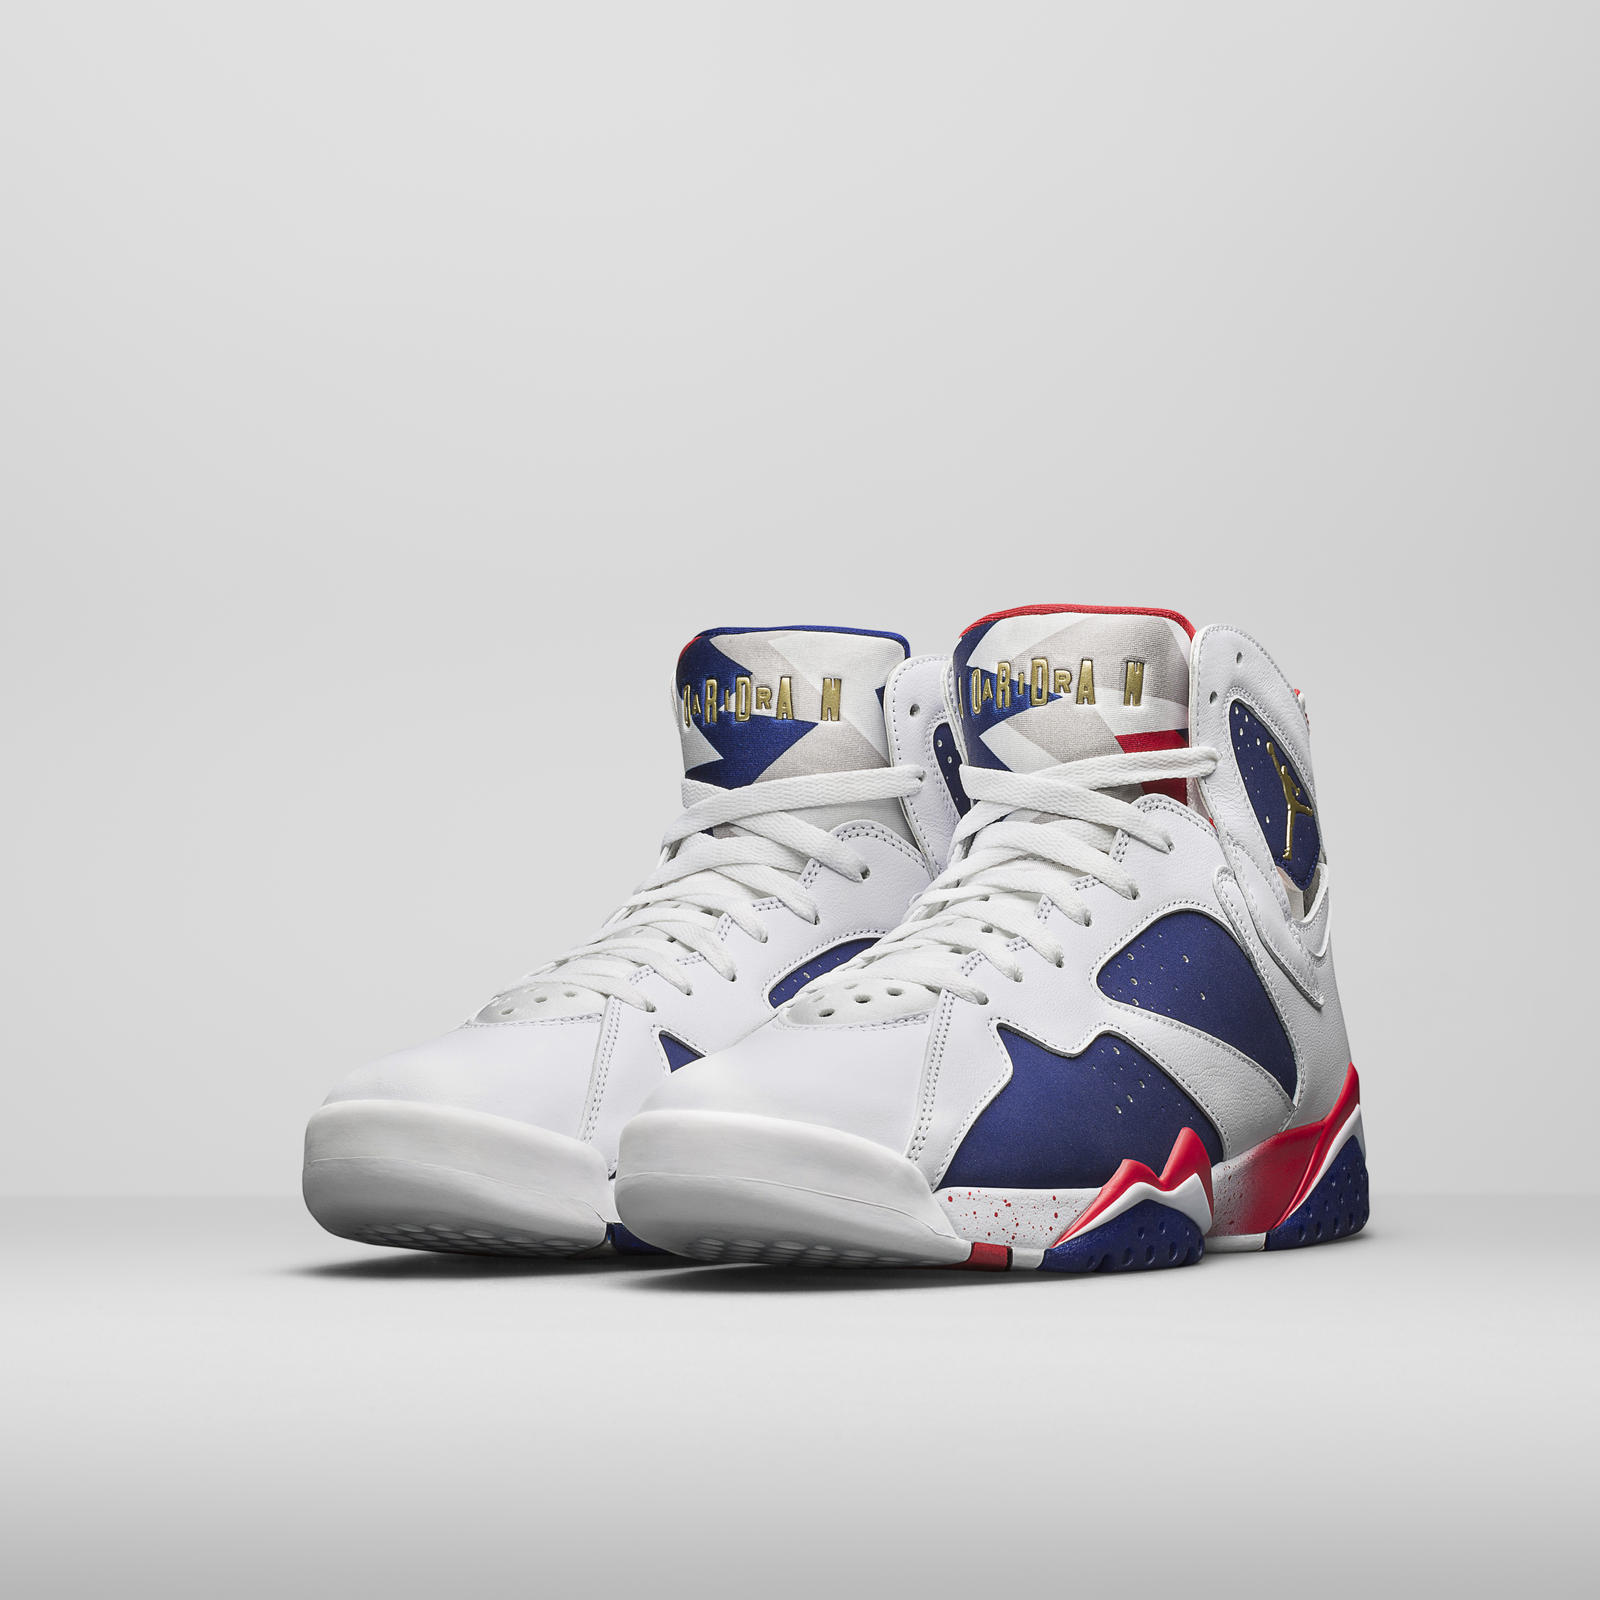 Air-Jordan-7-Alternate-Data-de-lançamento (5)